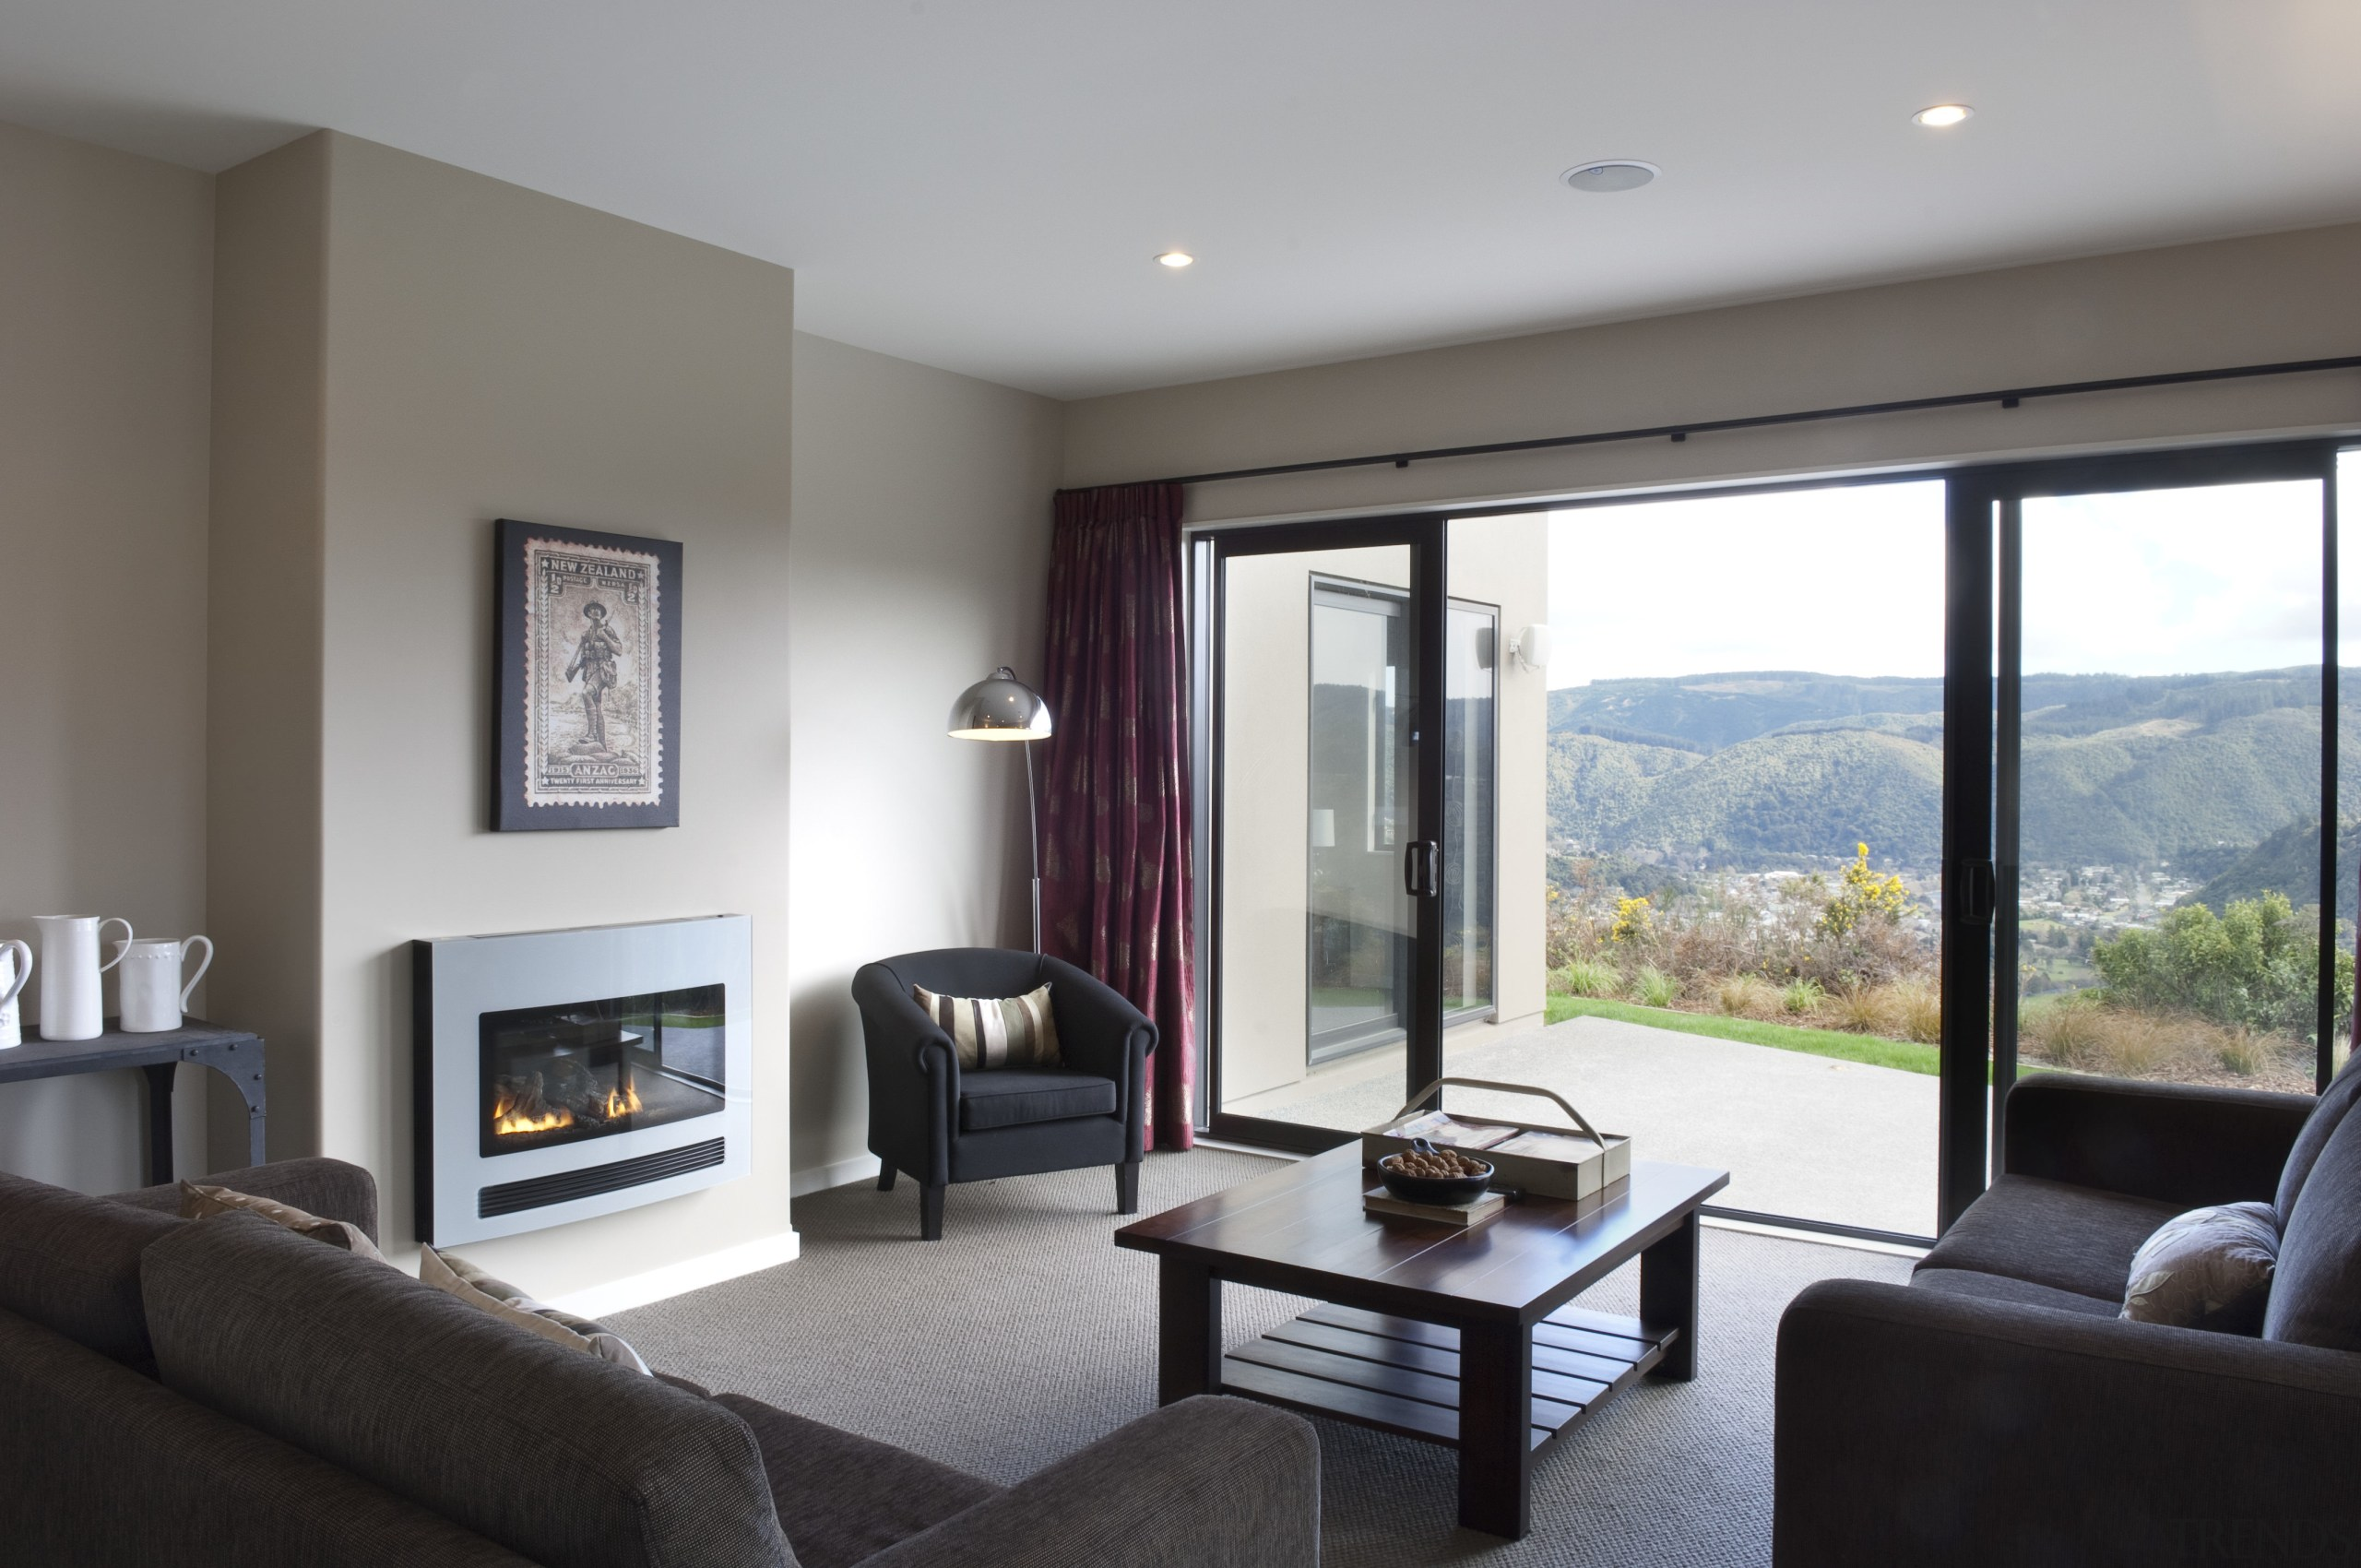 This Upper Hutt Show home was designed and interior design, living room, property, real estate, room, window, gray